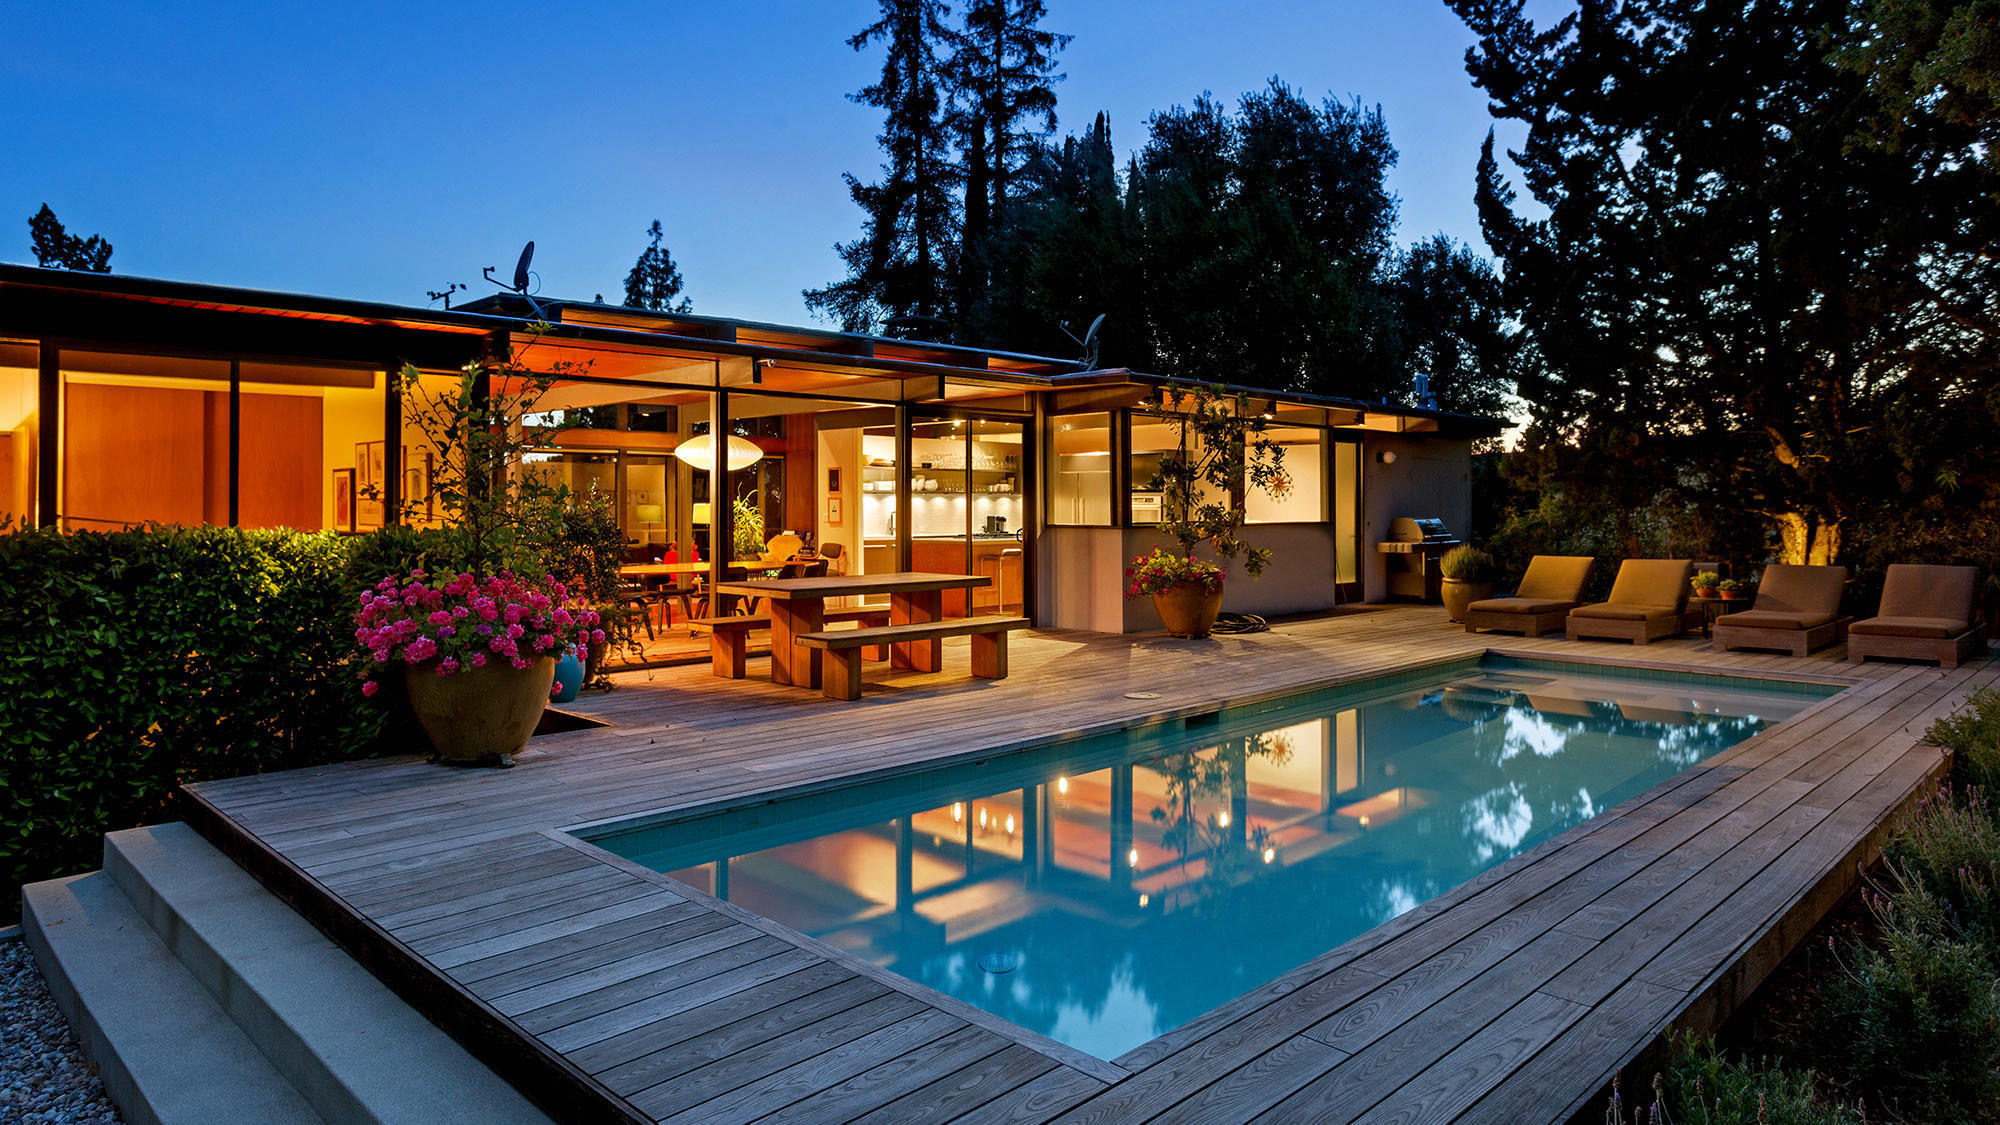 That sky-high asking price for a luxury home? Don't take it to the bank